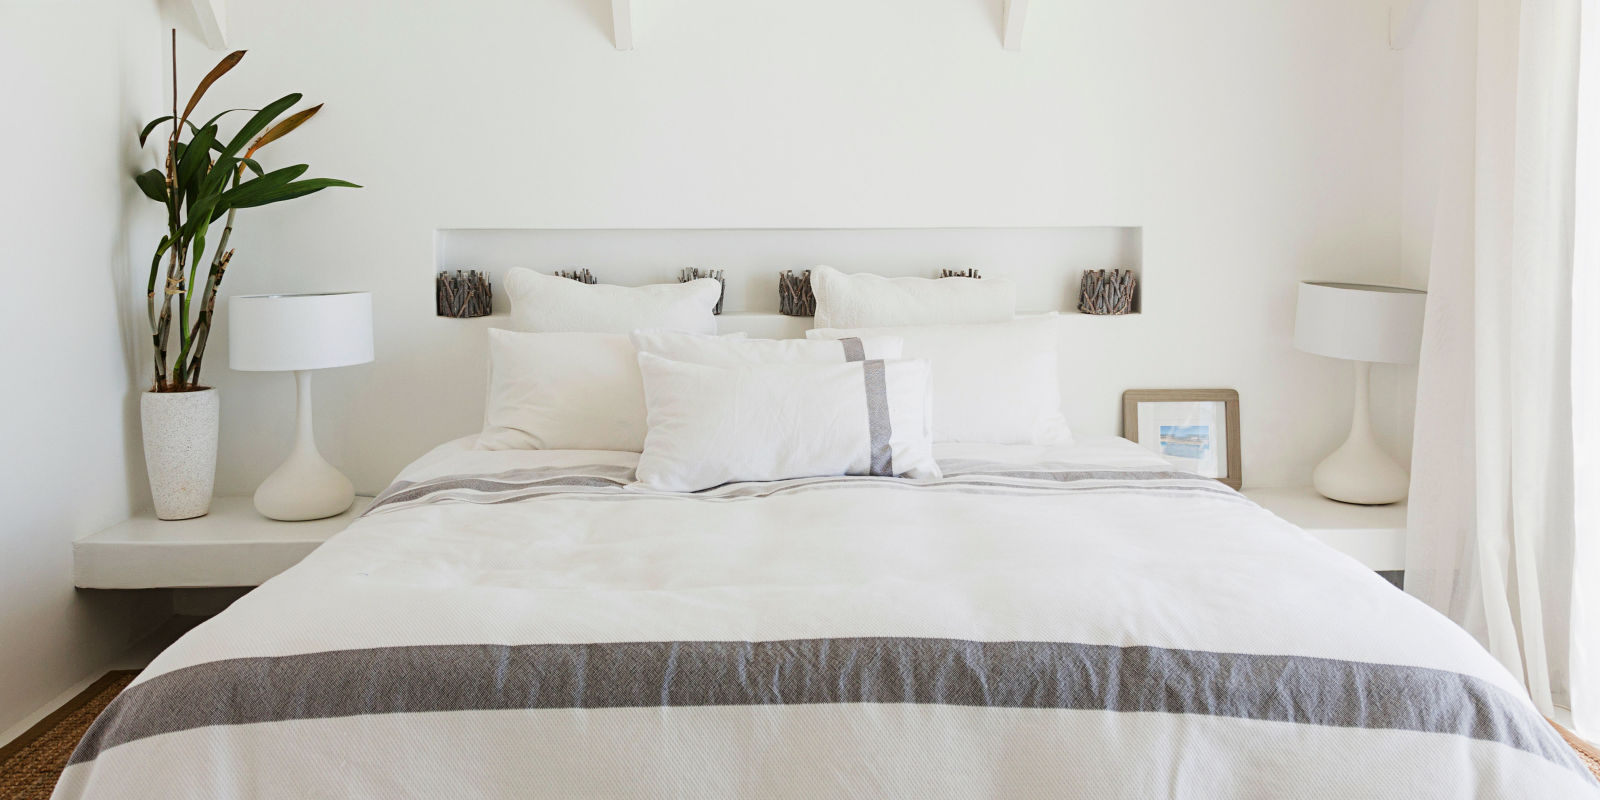 The Best Sheets For Making An Amazing Bed Idea